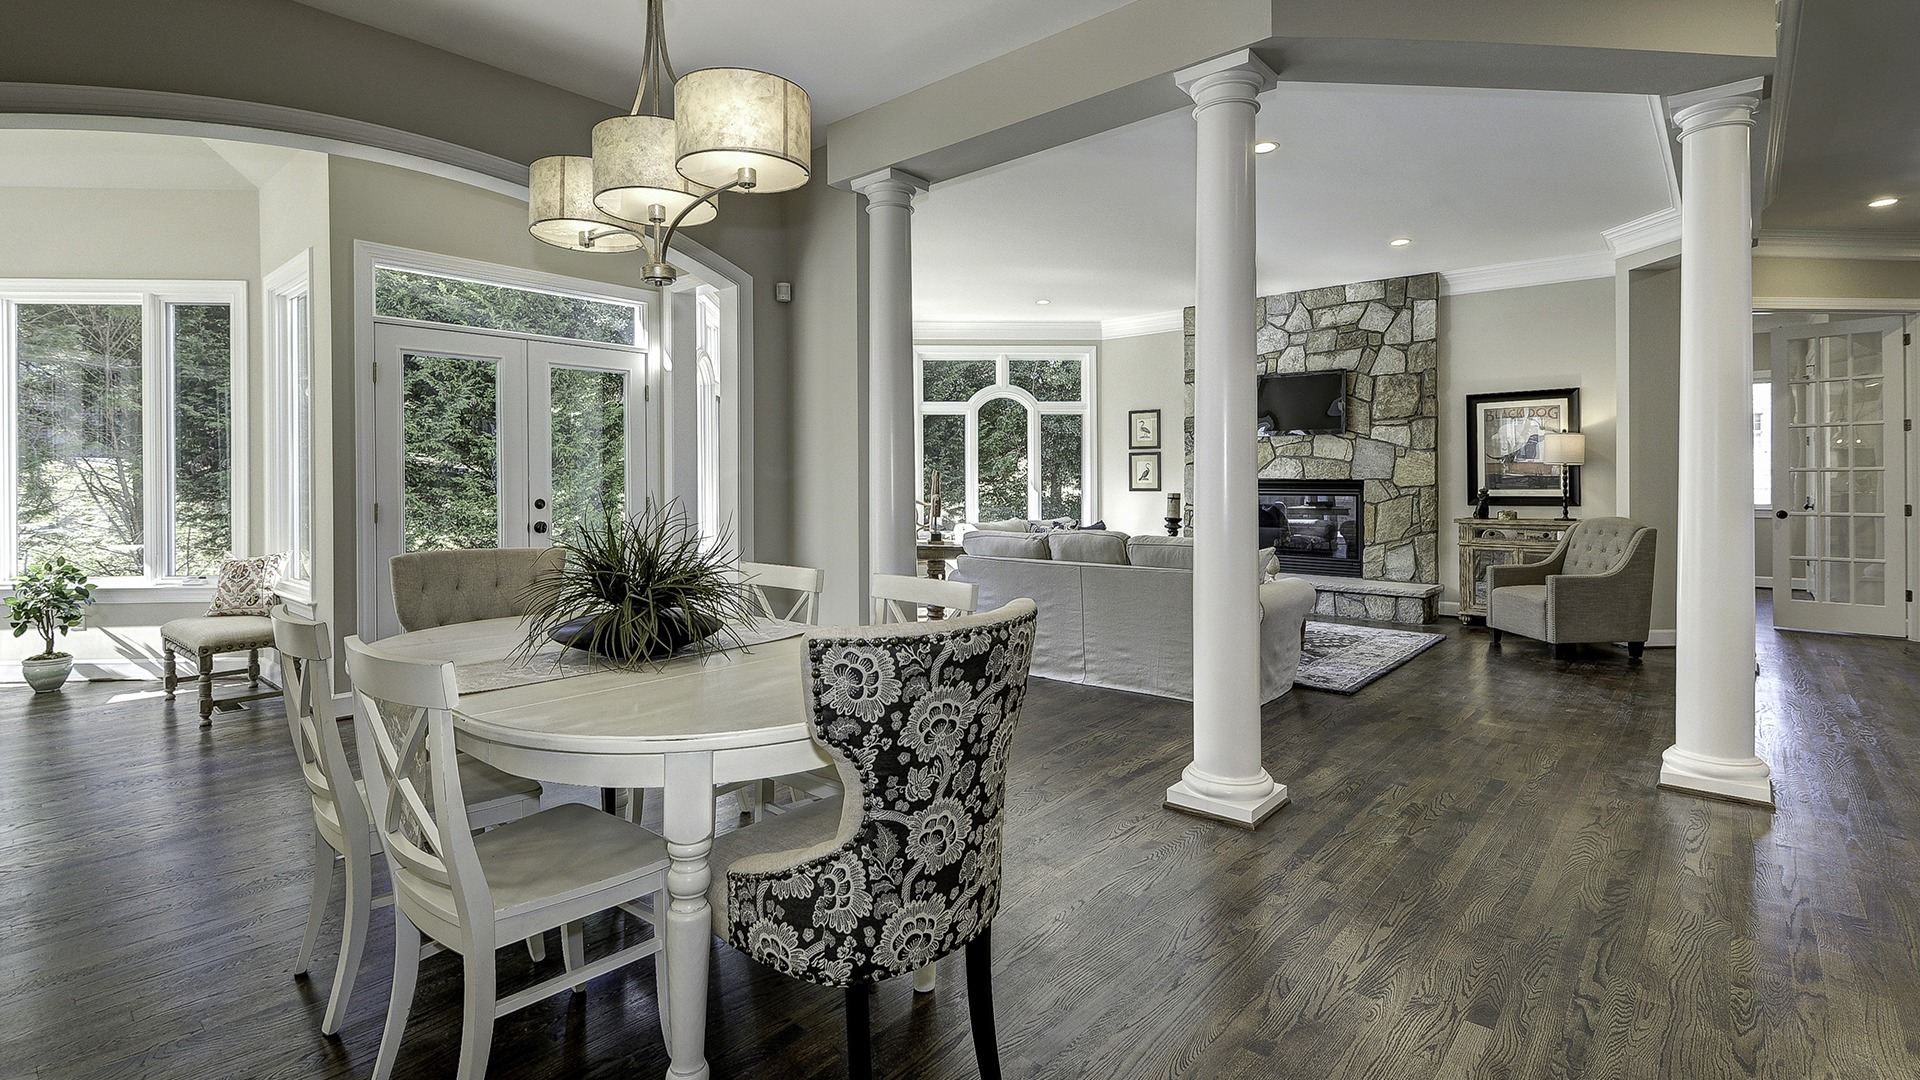 The Morning Room in Carper Street, a Gulick | One custom home.